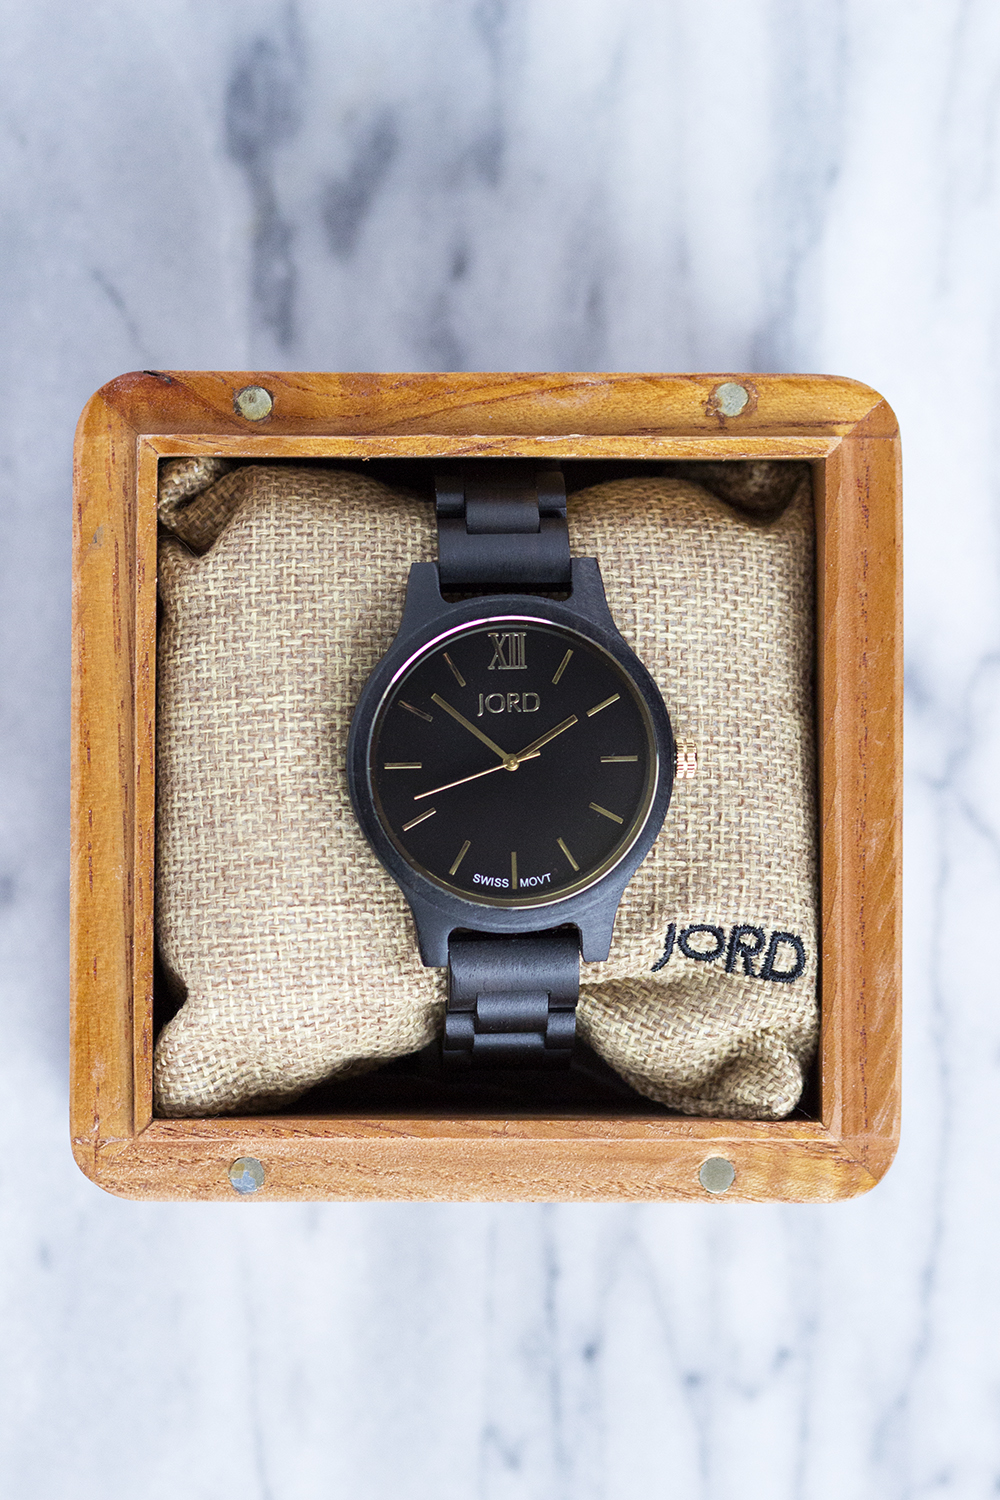 Getting Cozy with My New JORD Wood Watch Giveaway